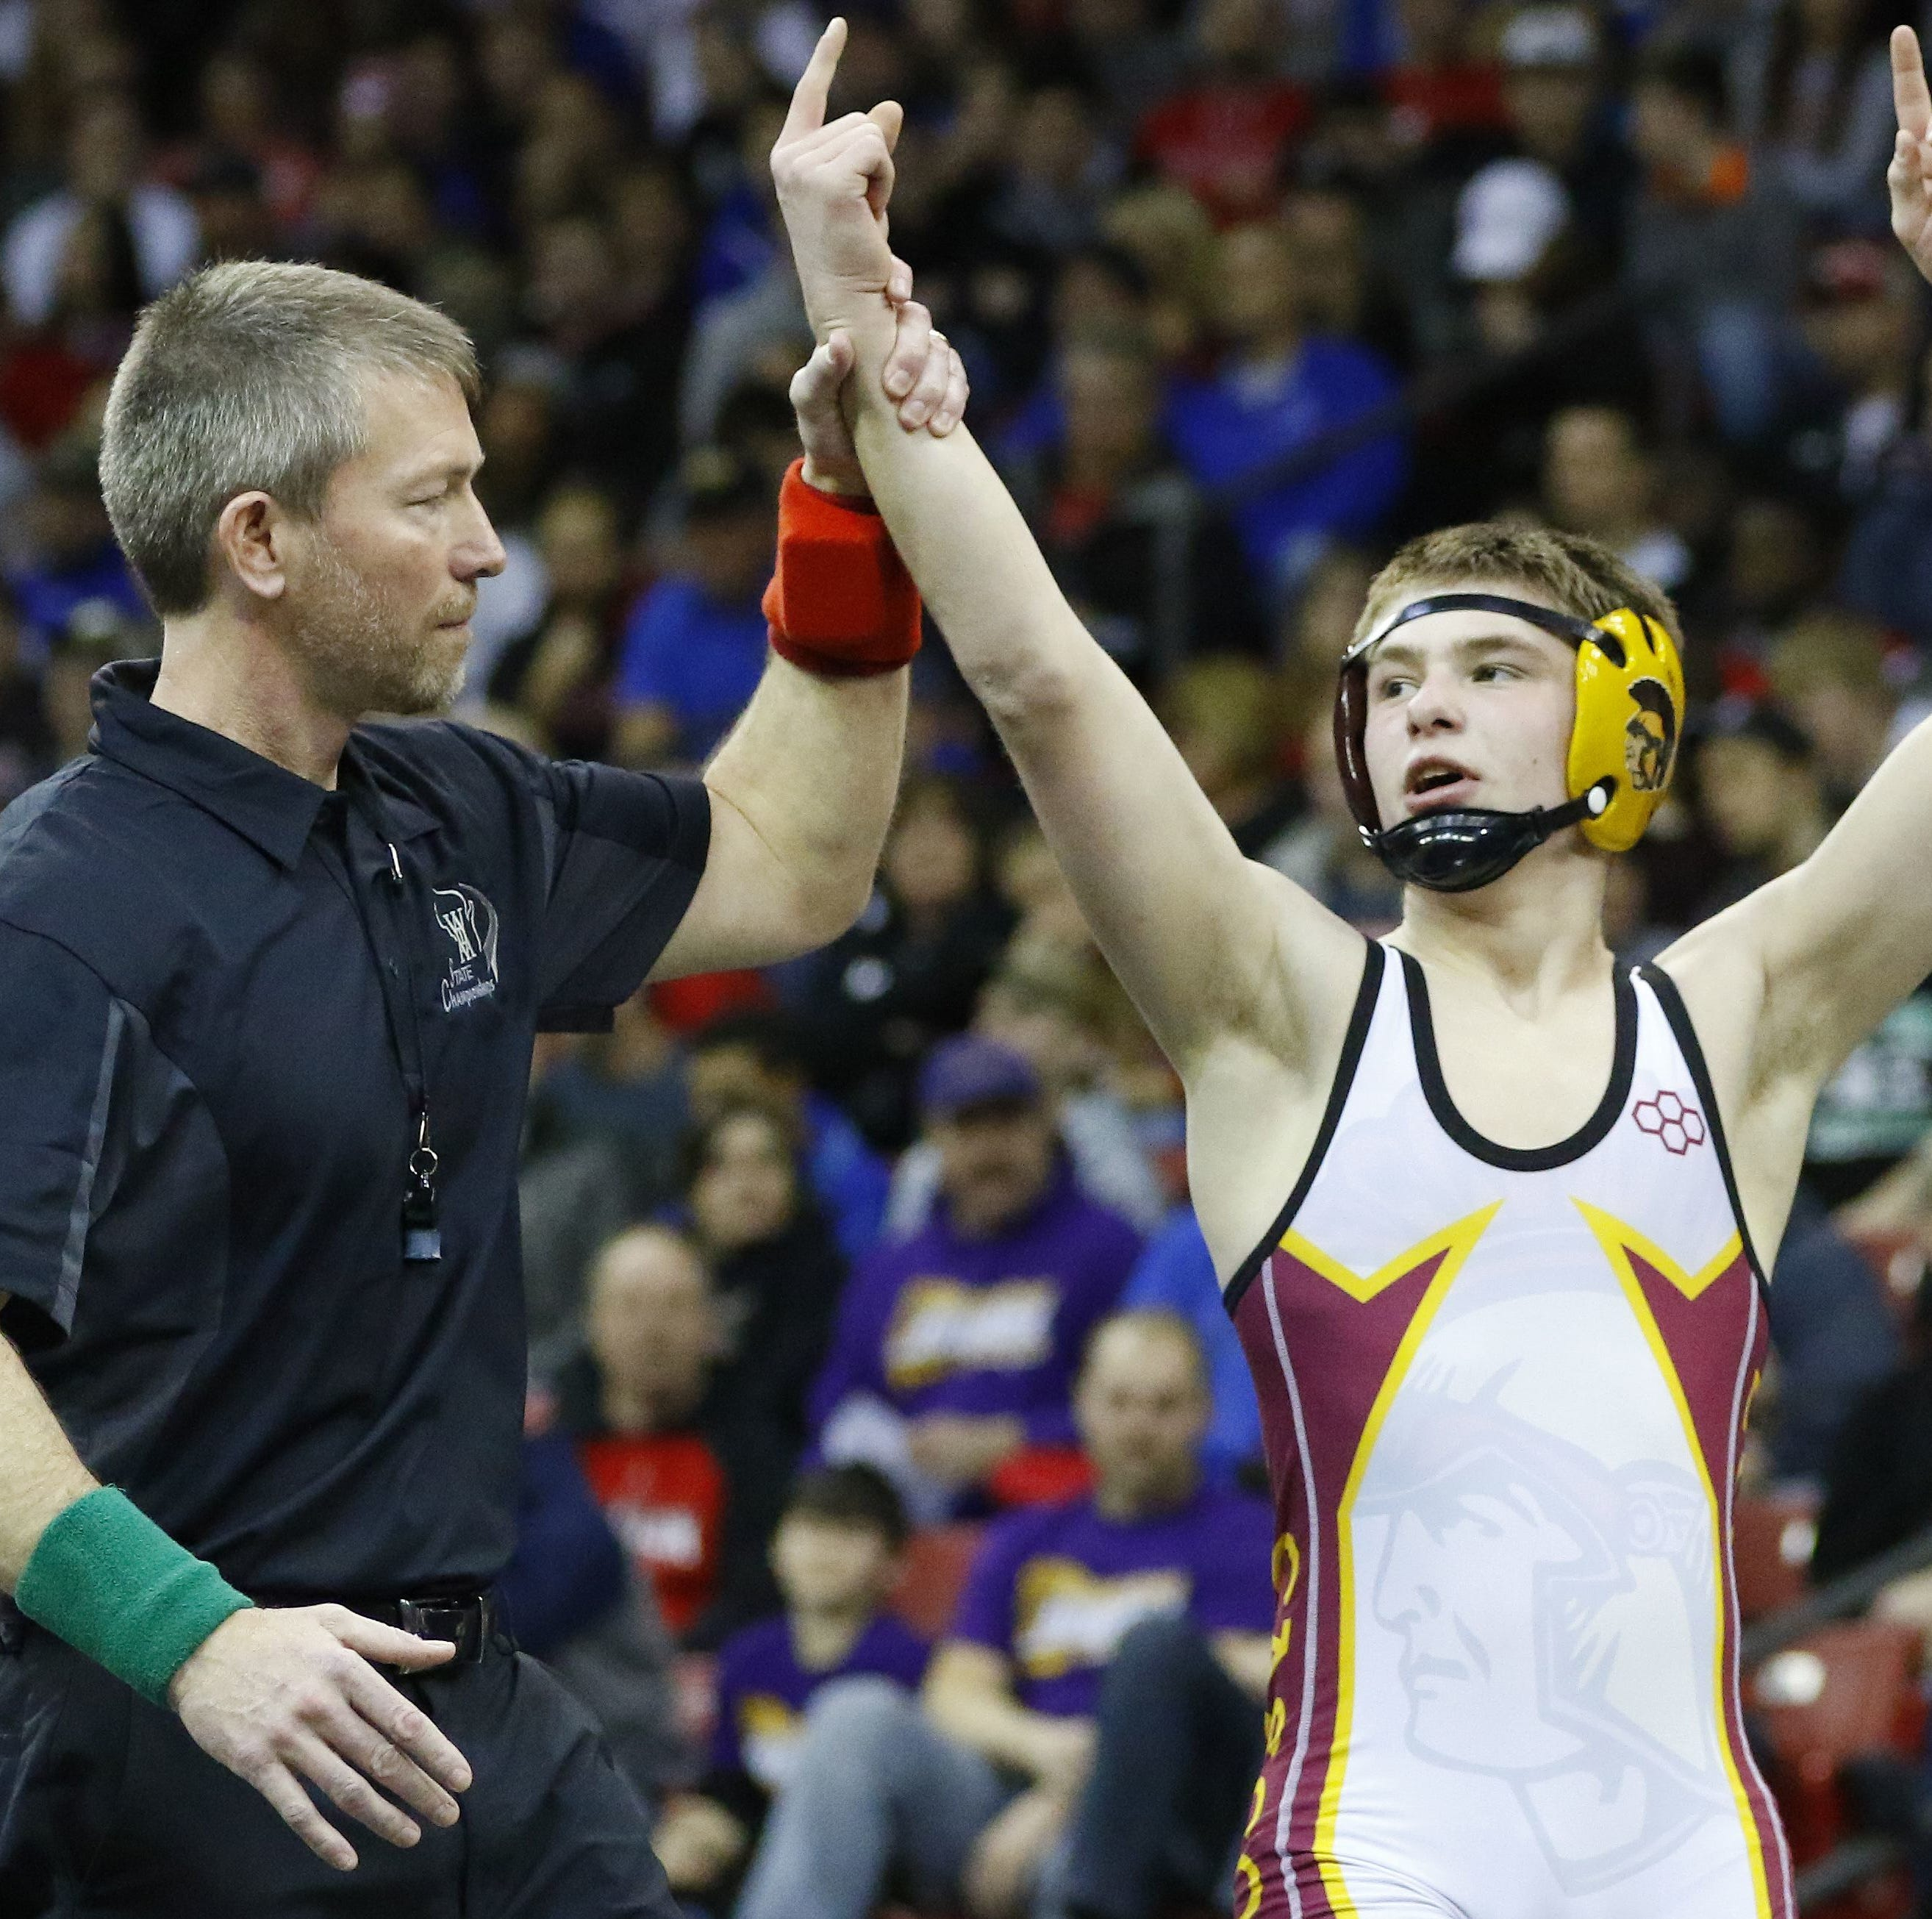 High school wrestling: L-C's Bryce Bosman could become the next 'four'tunate grappler